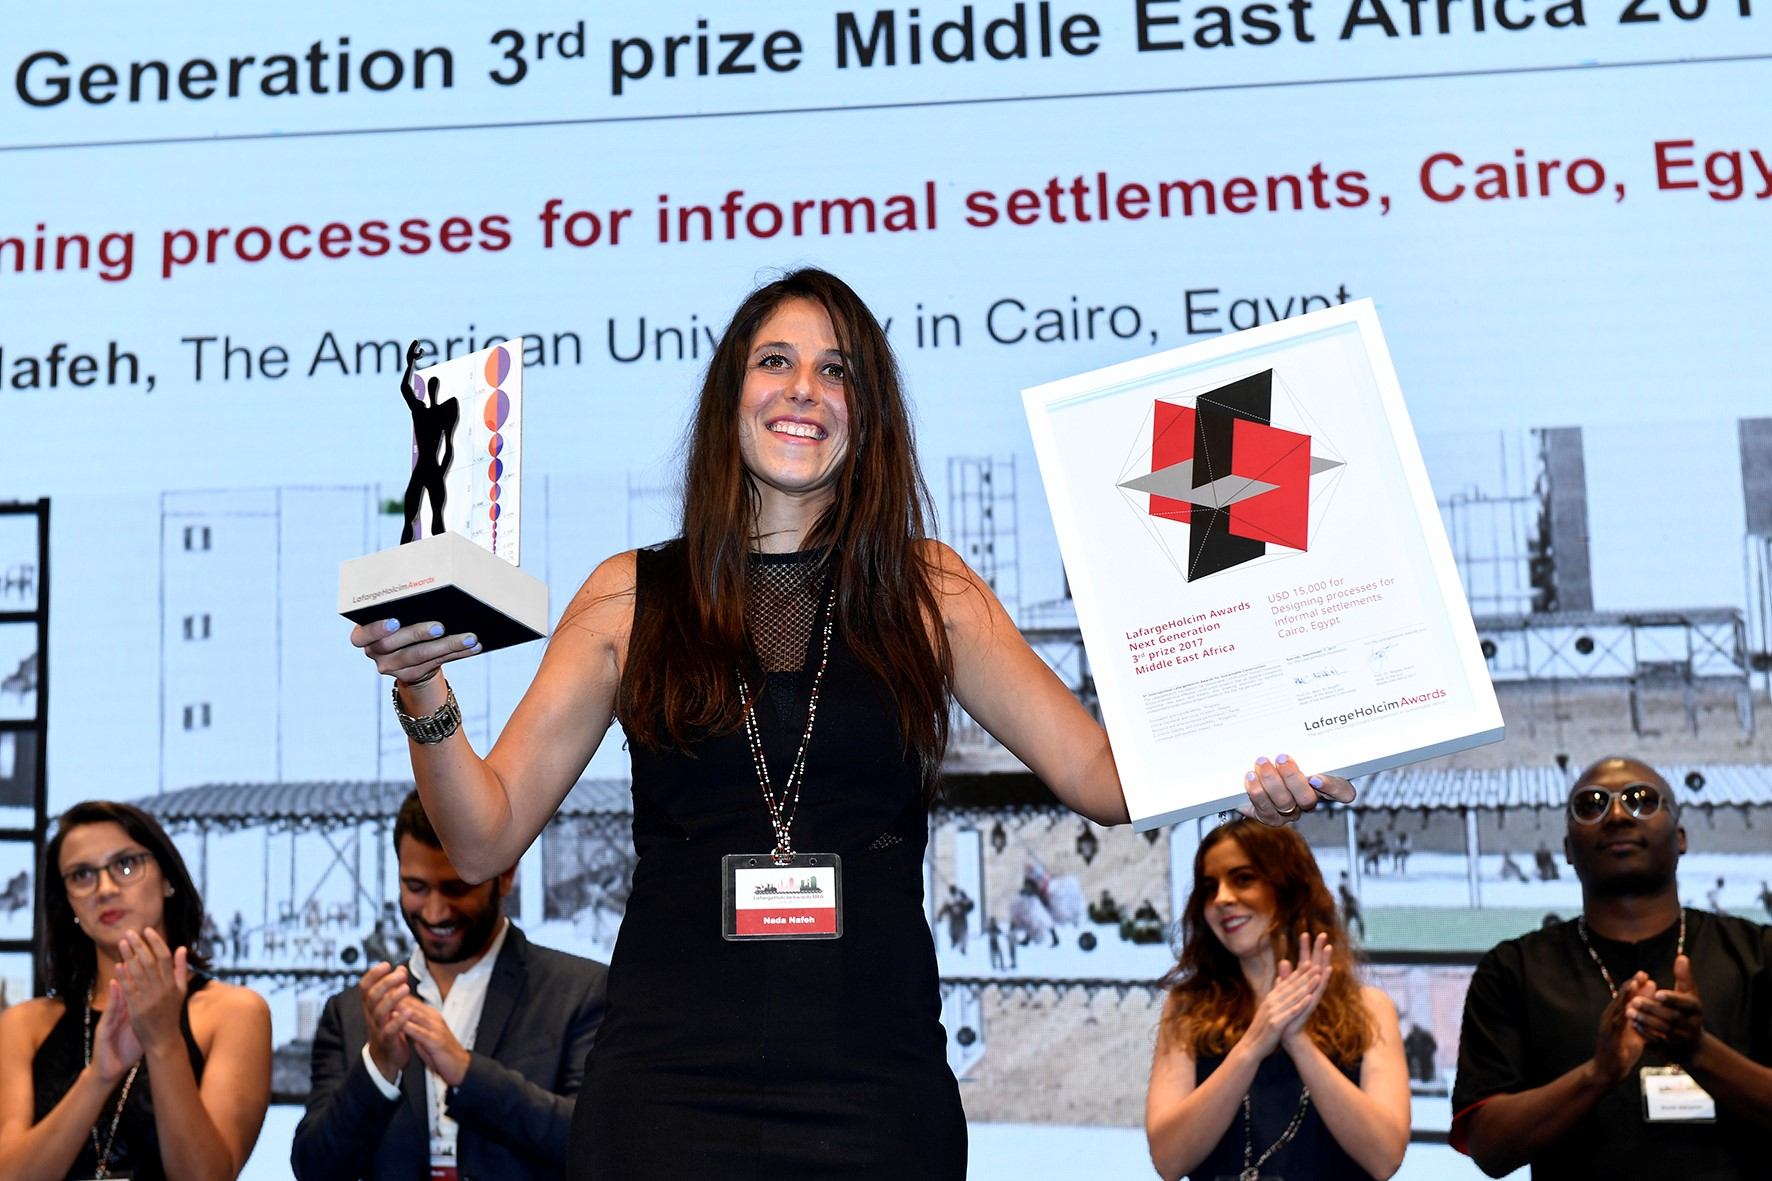 image of Nada Nafeh with her award